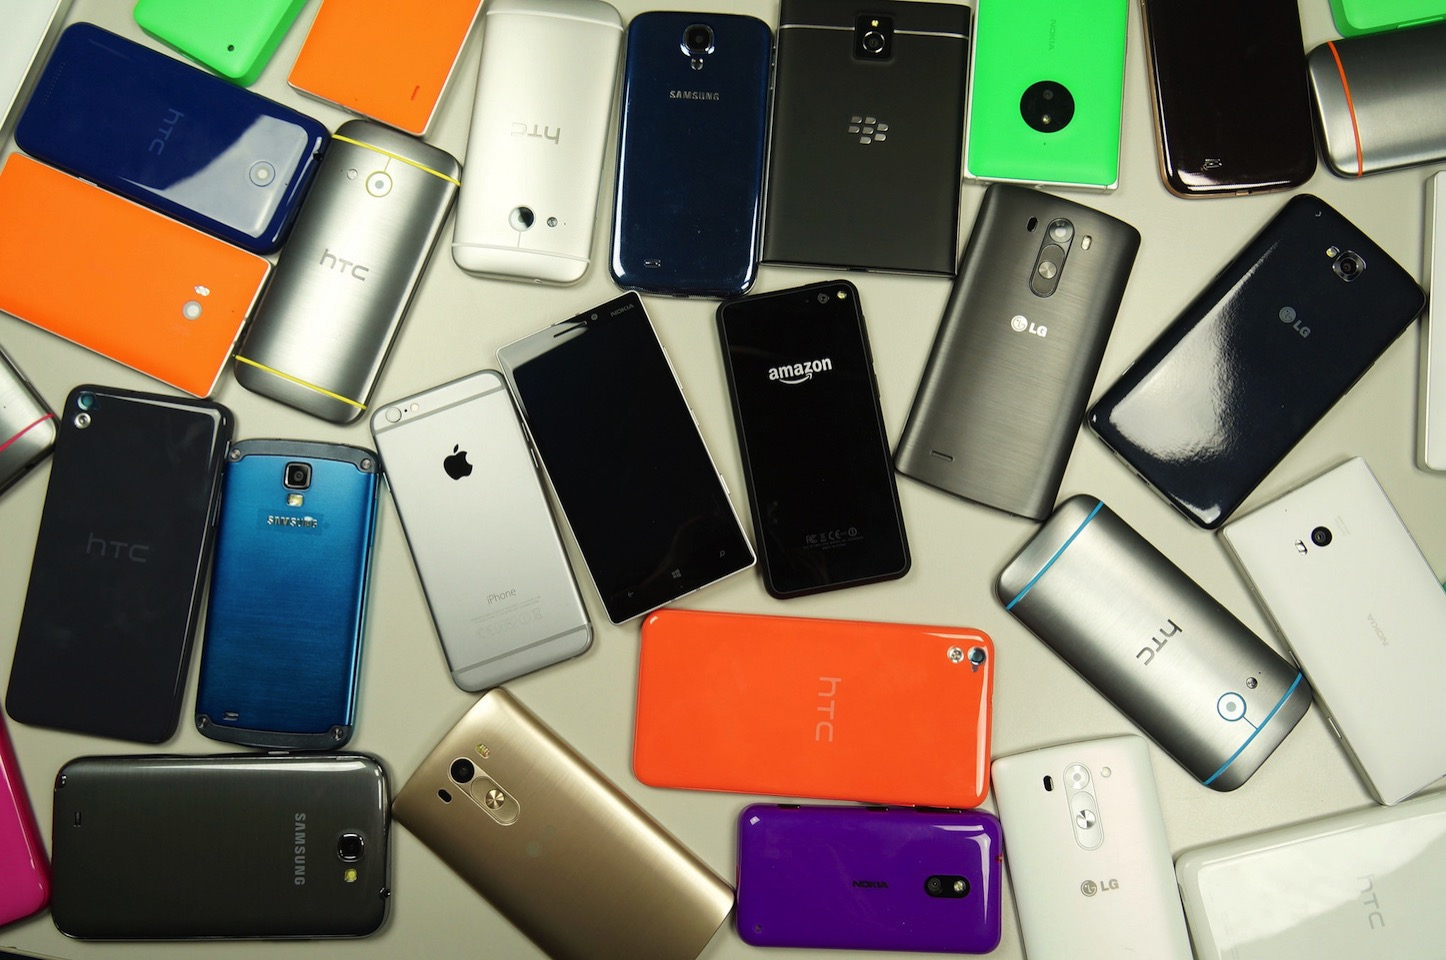 Lots of smartphones